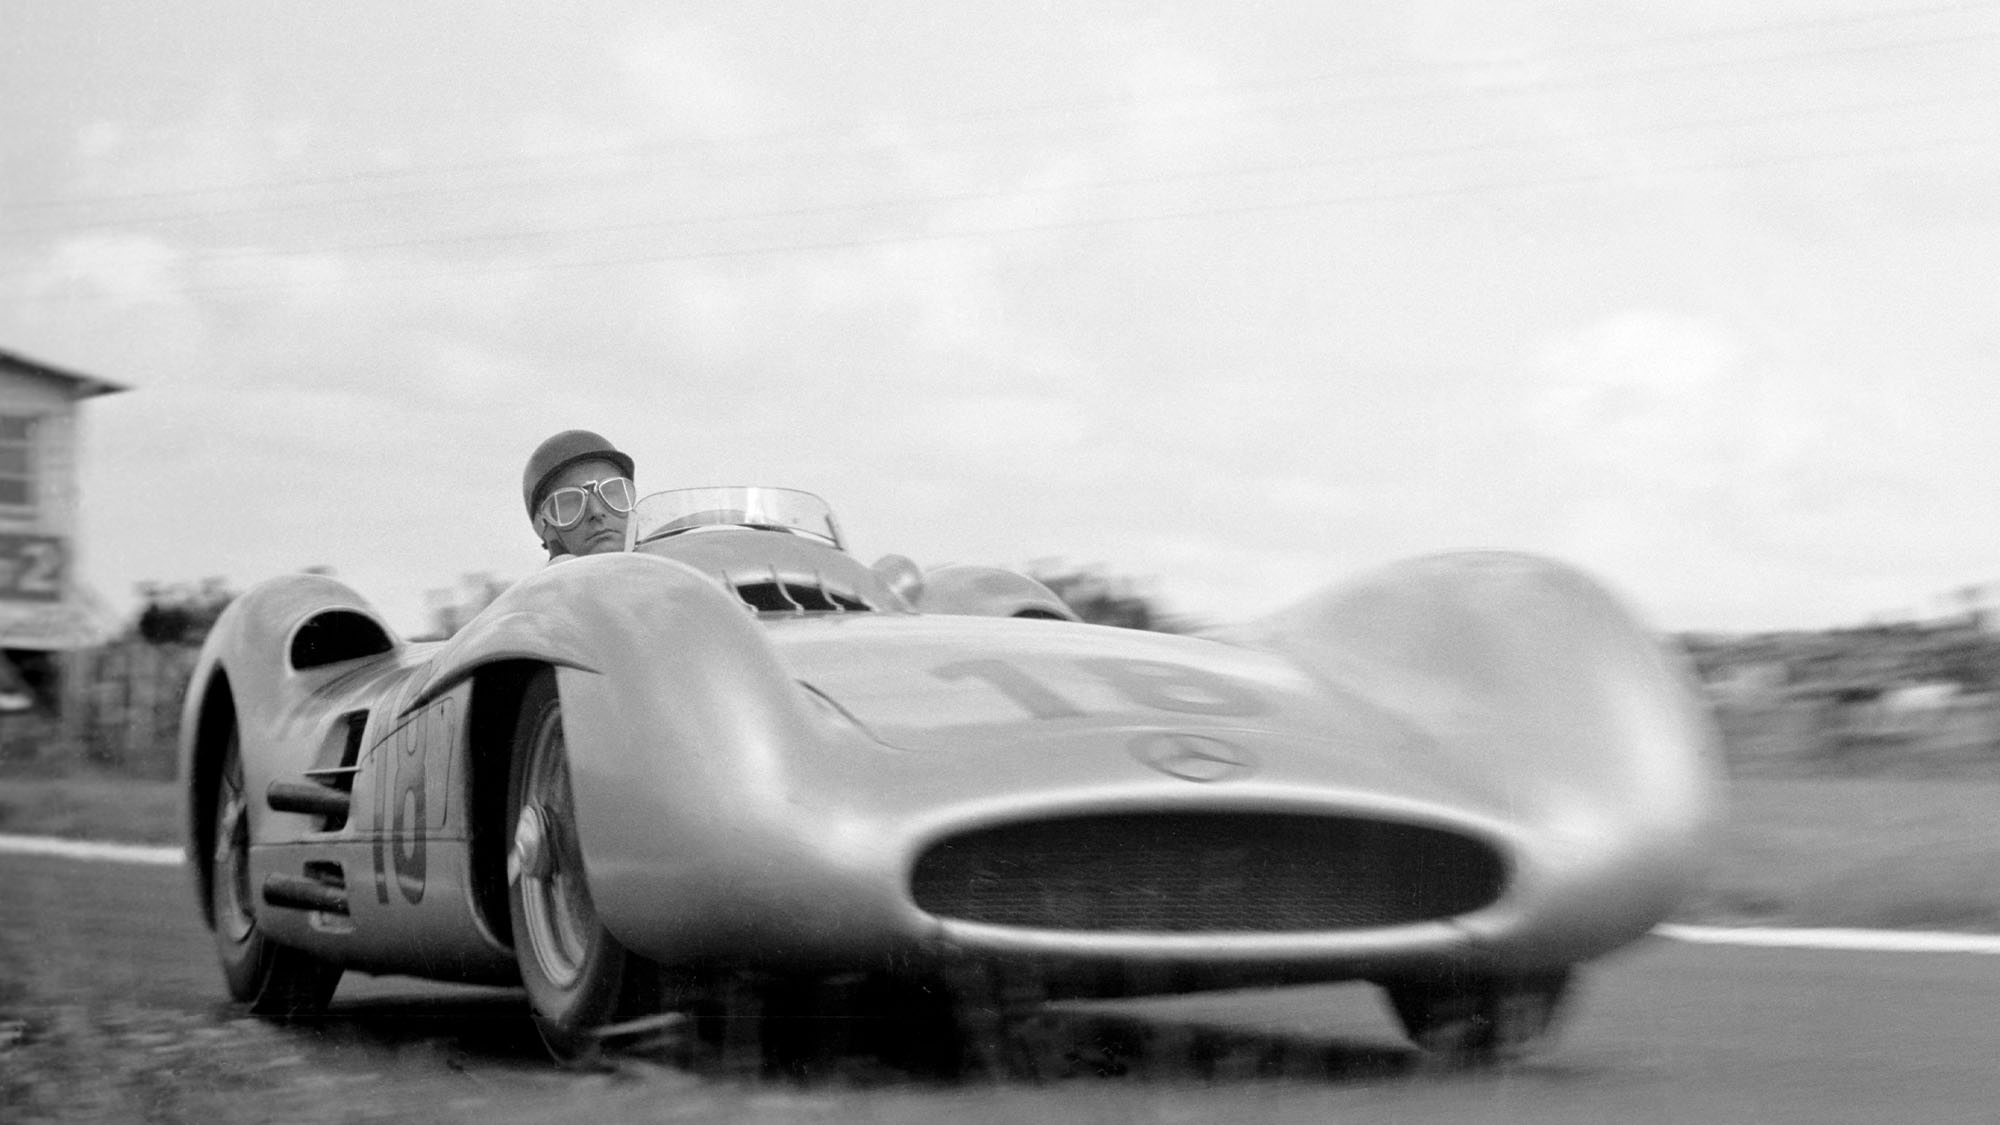 The French Grand Prix; Reims, July 4, 1954. At this race Mercedes introduced their new streamlined W196 Grand Prix cars. The new machine was victorious in this its first outing, with Juan Manuel Fangio, seen here in the ultra-fast right hand bend after the start/finish line, the easy winner ahead of his colleague Karl Kling and the privately-entered Ferrari of Robert Manzon. To some motor racing observers, it was almost as if Mercedes had come back right where they had left off in 1939. Lying on the ground right at the apex, Klemantaski captures Fangio's concentrational sangfroid perfectly. (Photo by Klemantaski Collection/Getty Images)